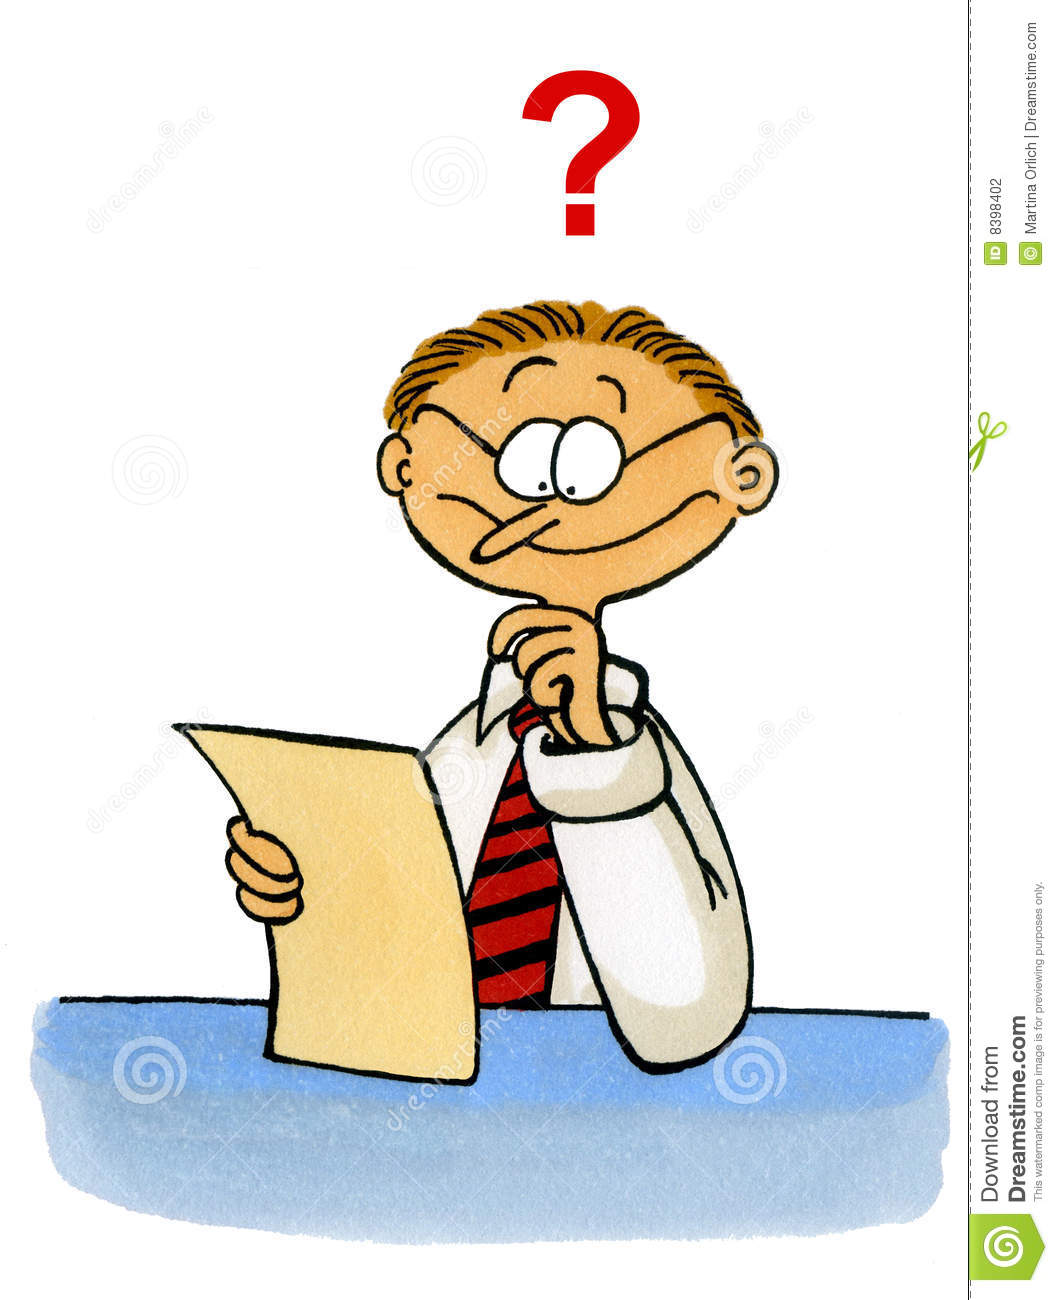 Cartoon Of A Man Looking Puzzled At A Document Stock Photography.